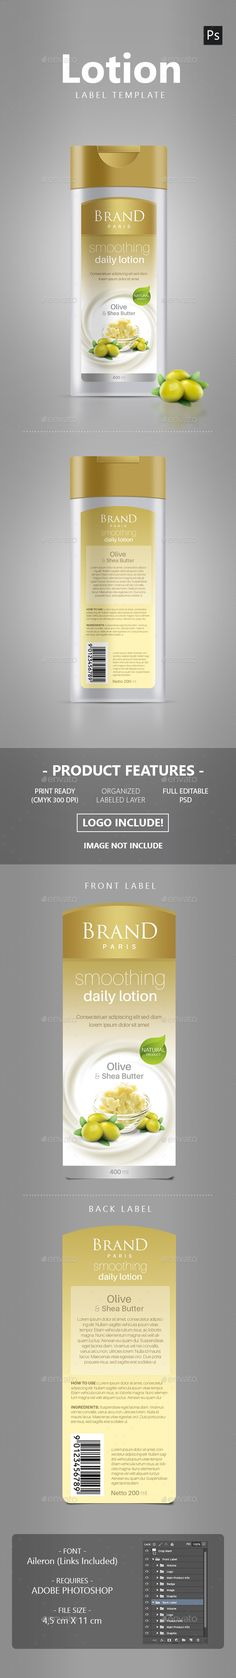 iu0027m Mukesh (themukeshpandit) on Pinterest - abel templates psd